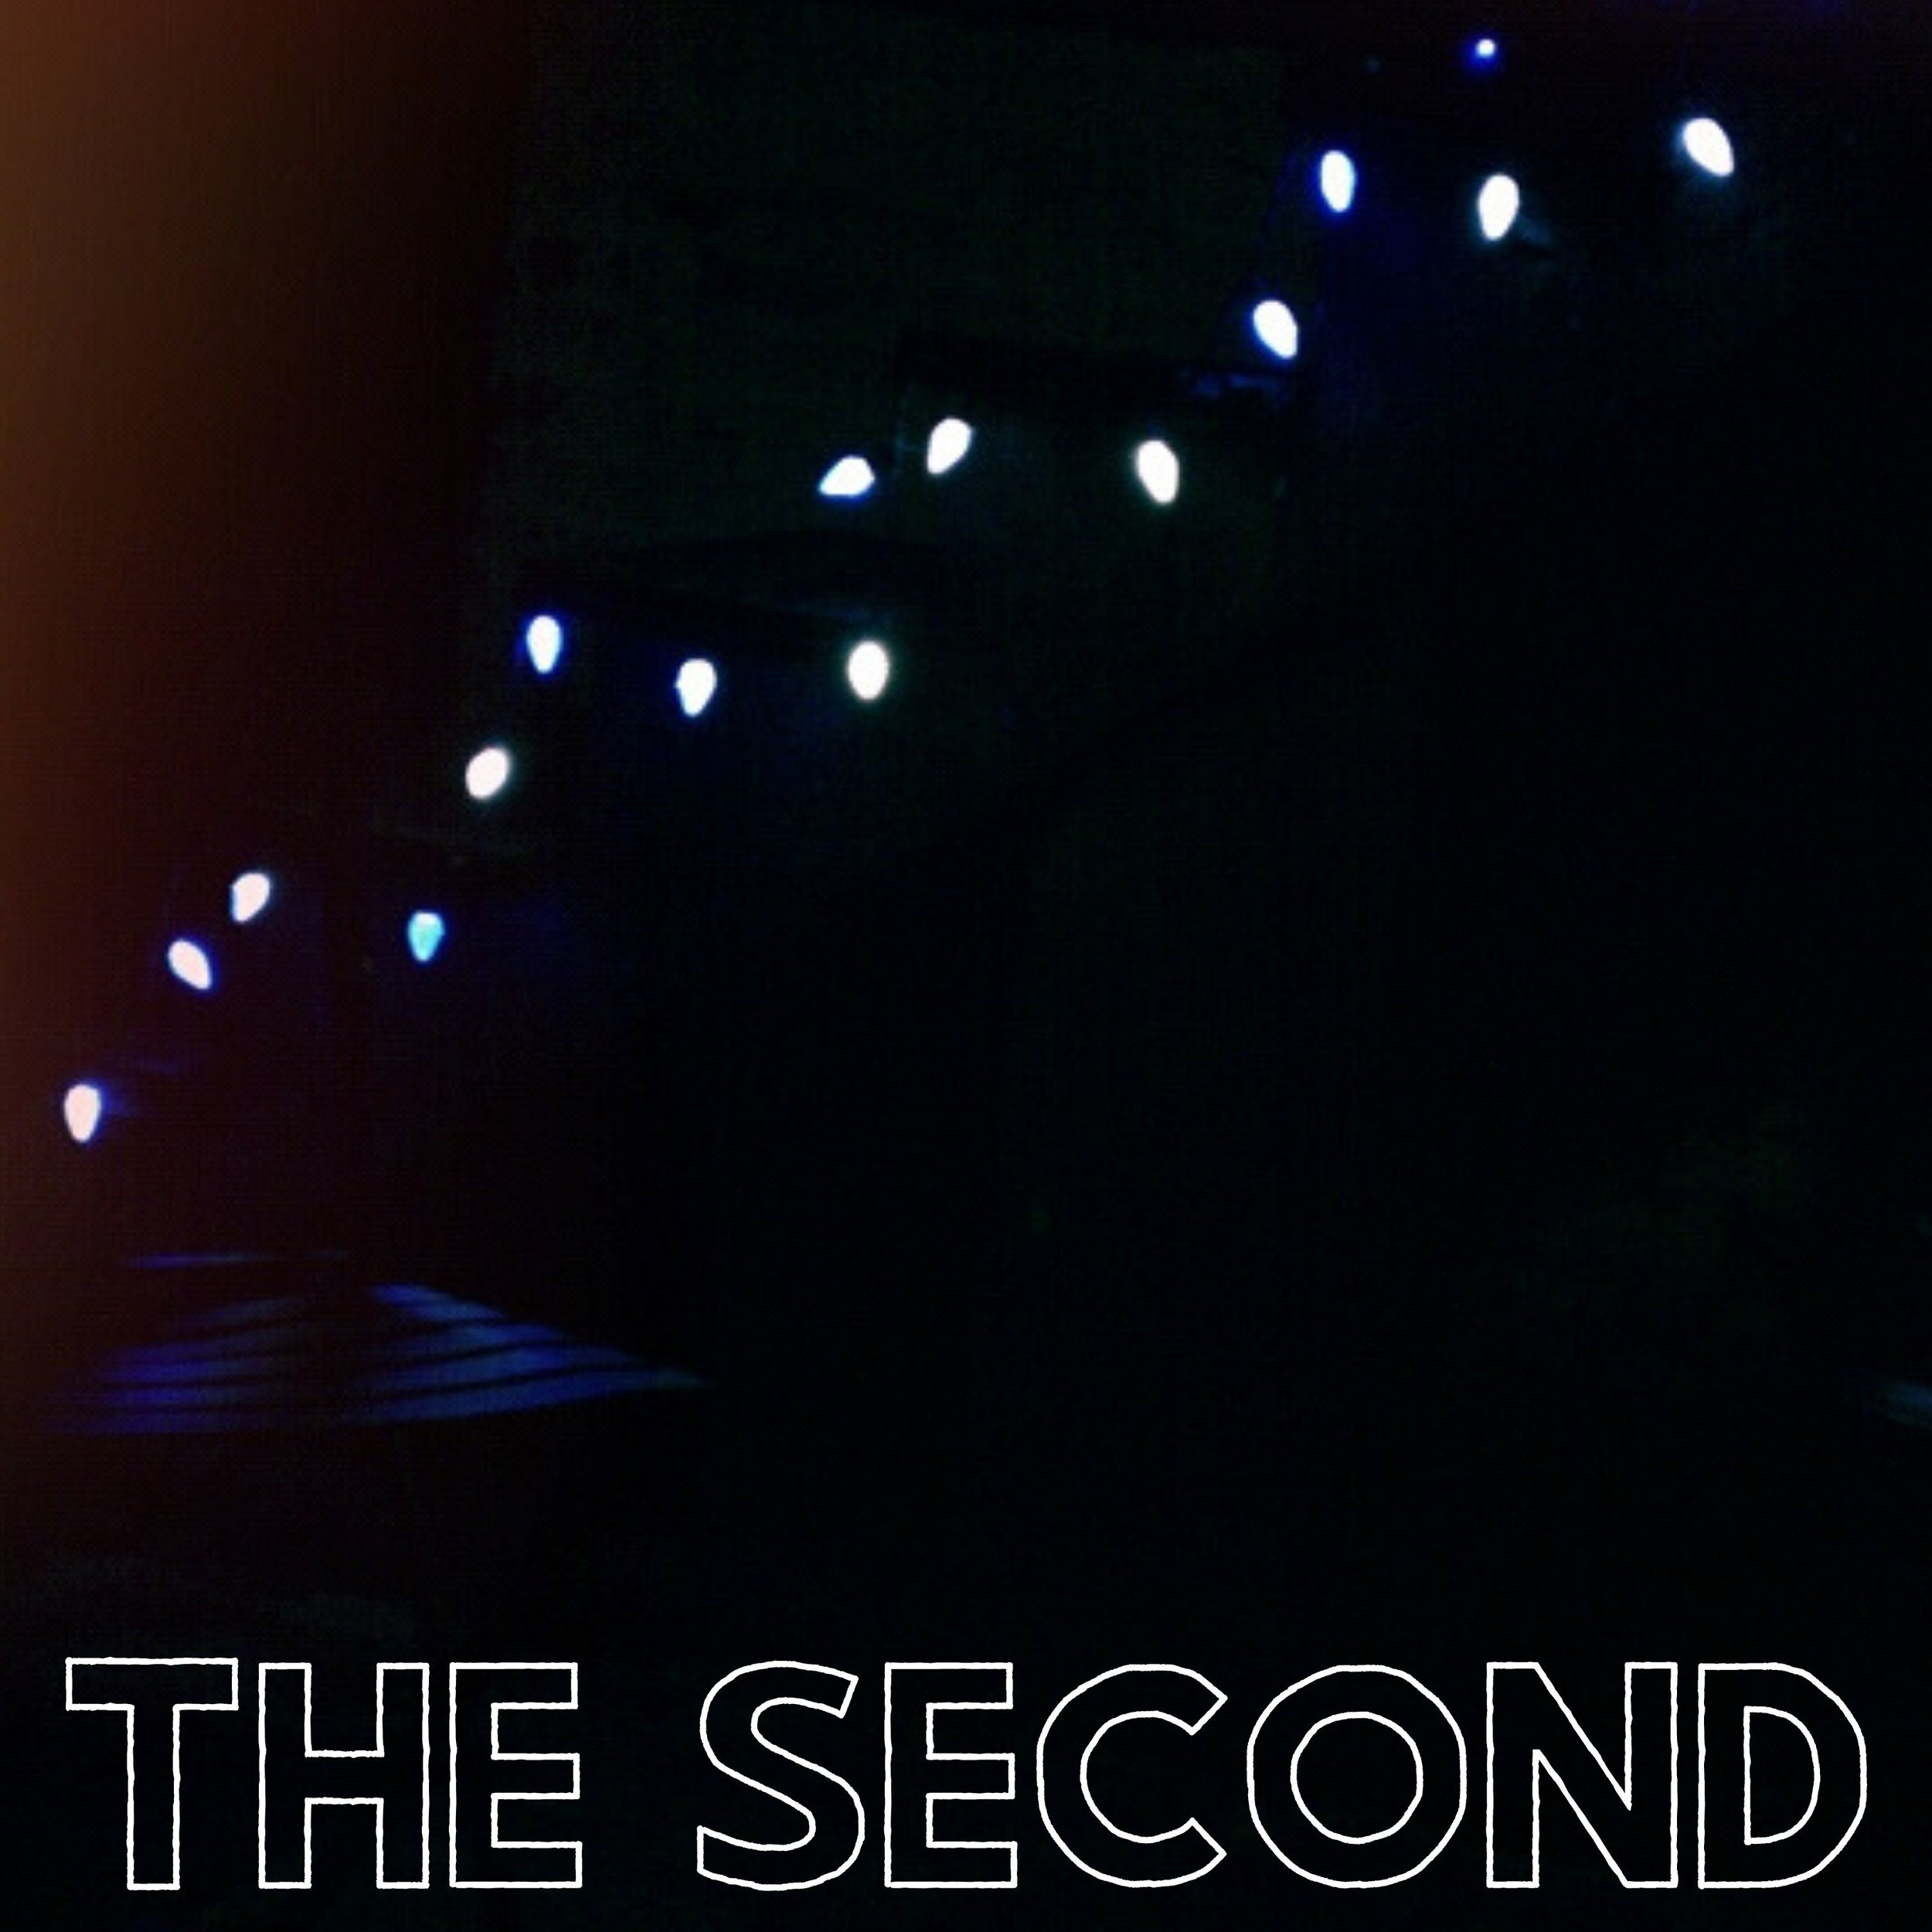 THE SECOND - 2006 - Limited release solo EP, recorded in Utica NY and Syracuse NY.